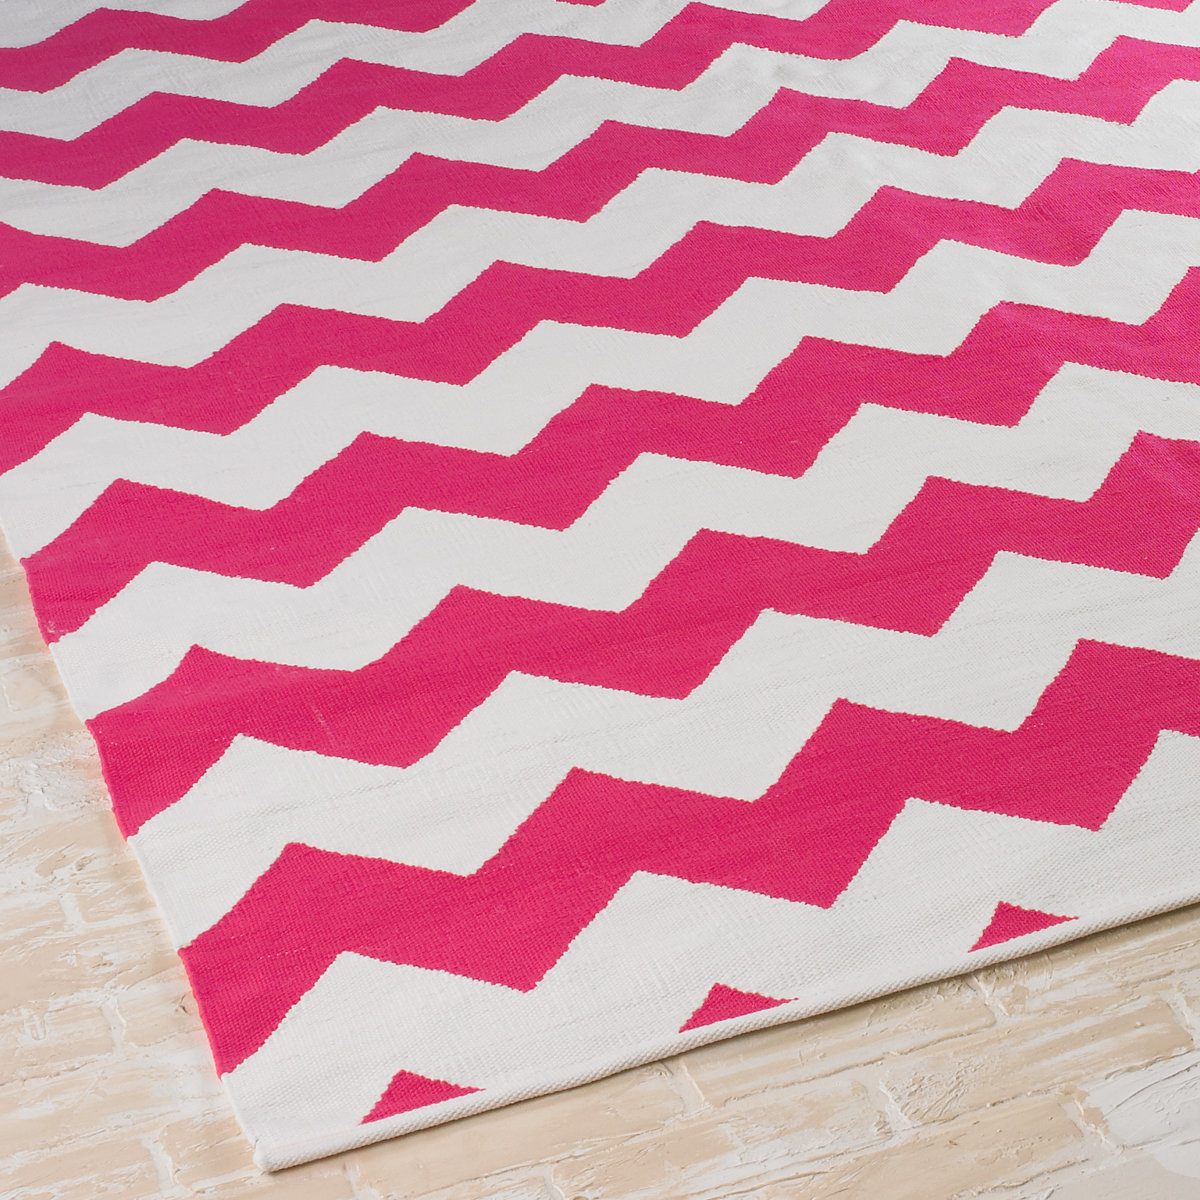 14 Stylish Rugs That Are So Durable Even Your Kids Can T Destroy Them